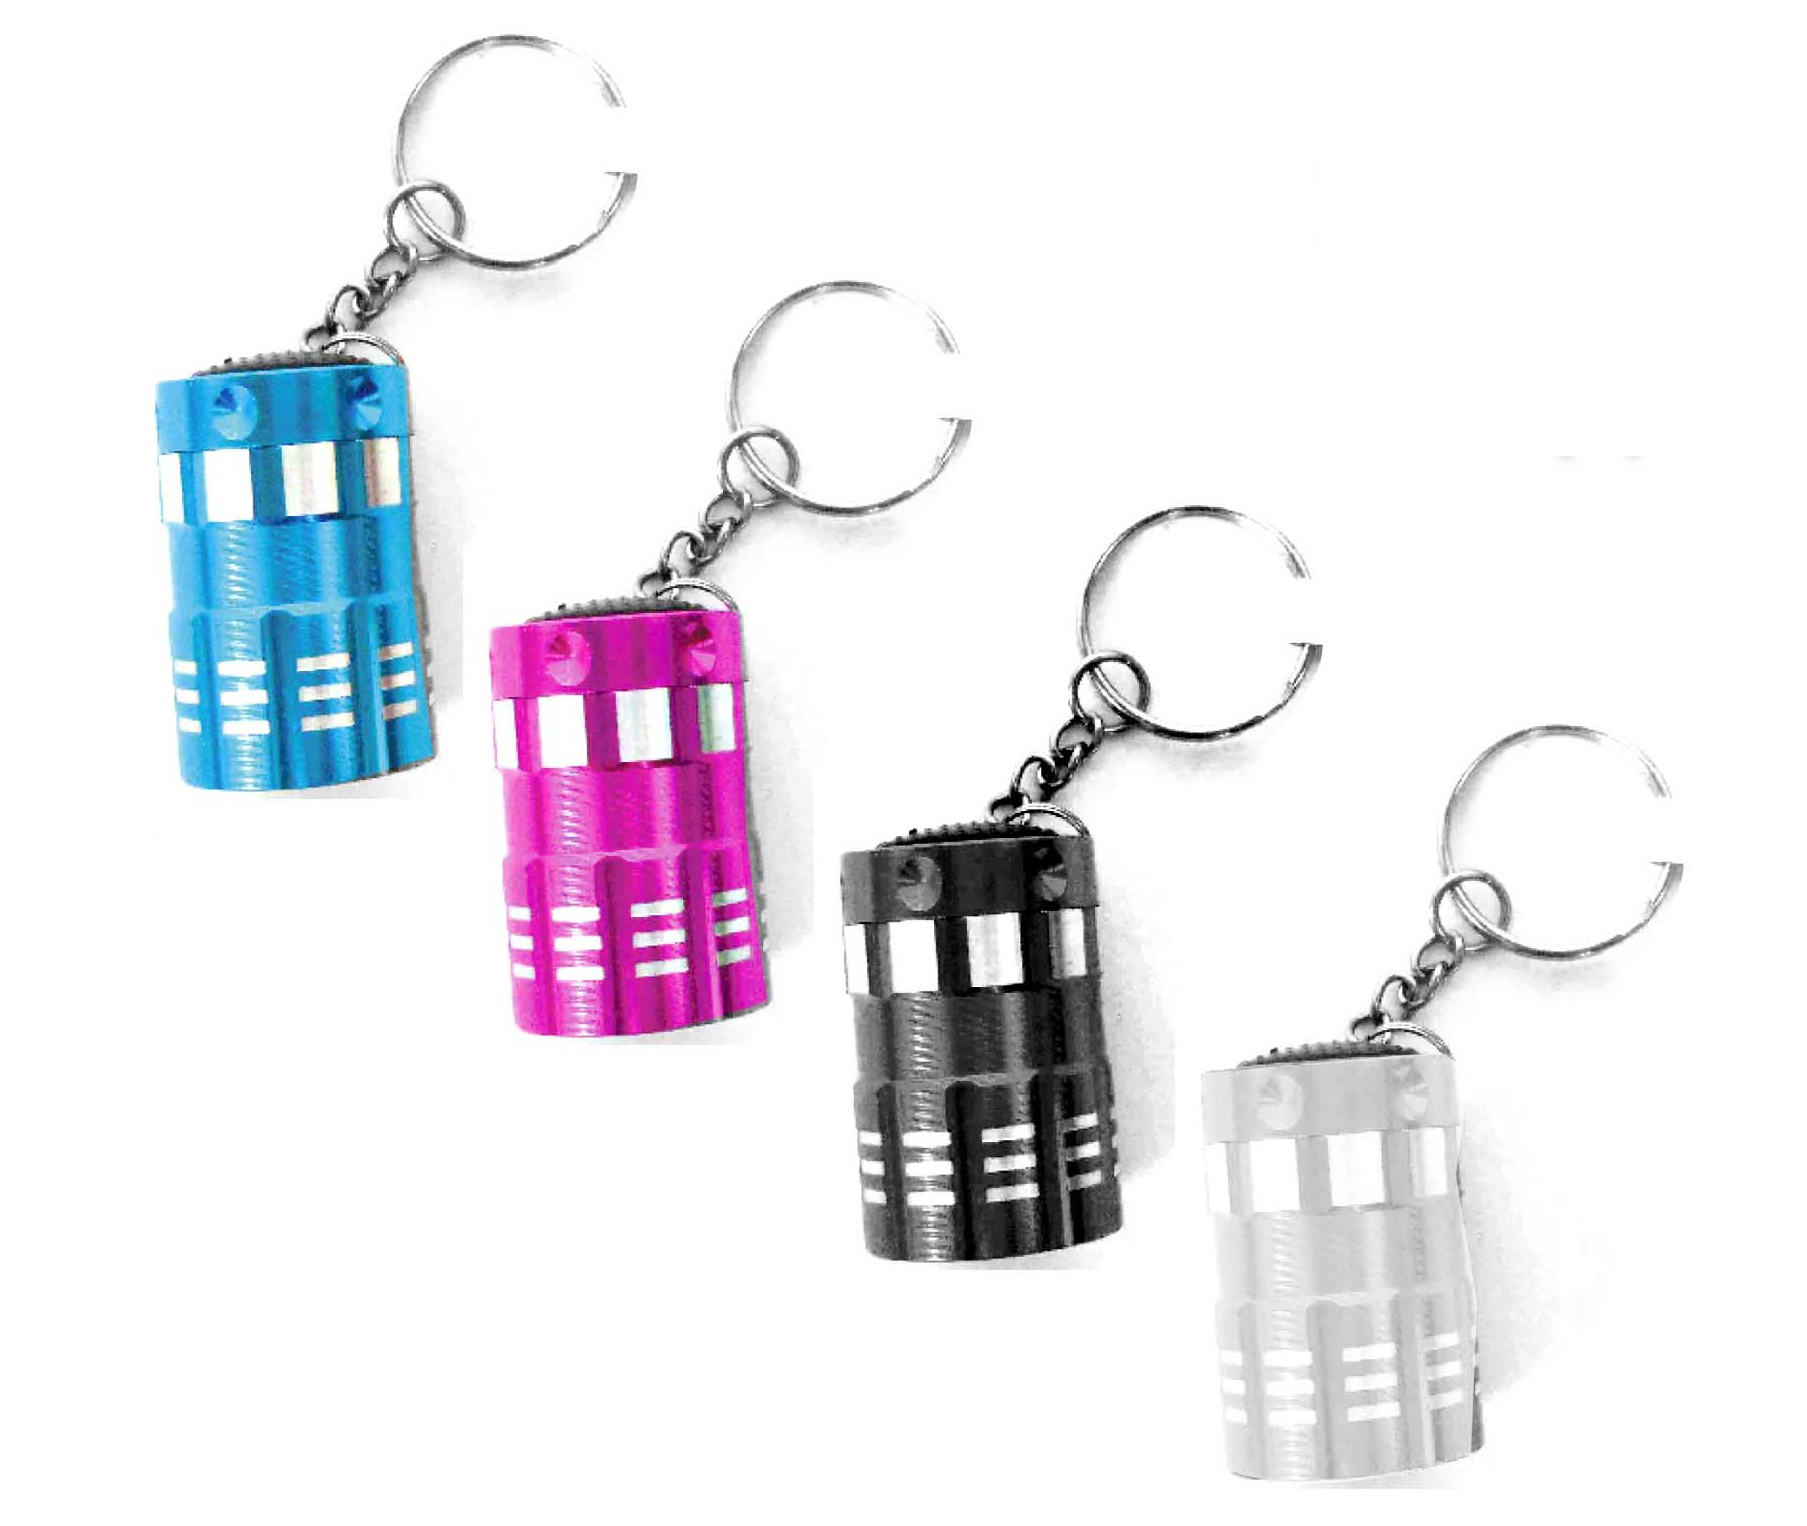 Vibe-1-Pack-Assorted-Ultra-Bright-9LED-Mini-Aluminum-Keychain-Flashlight